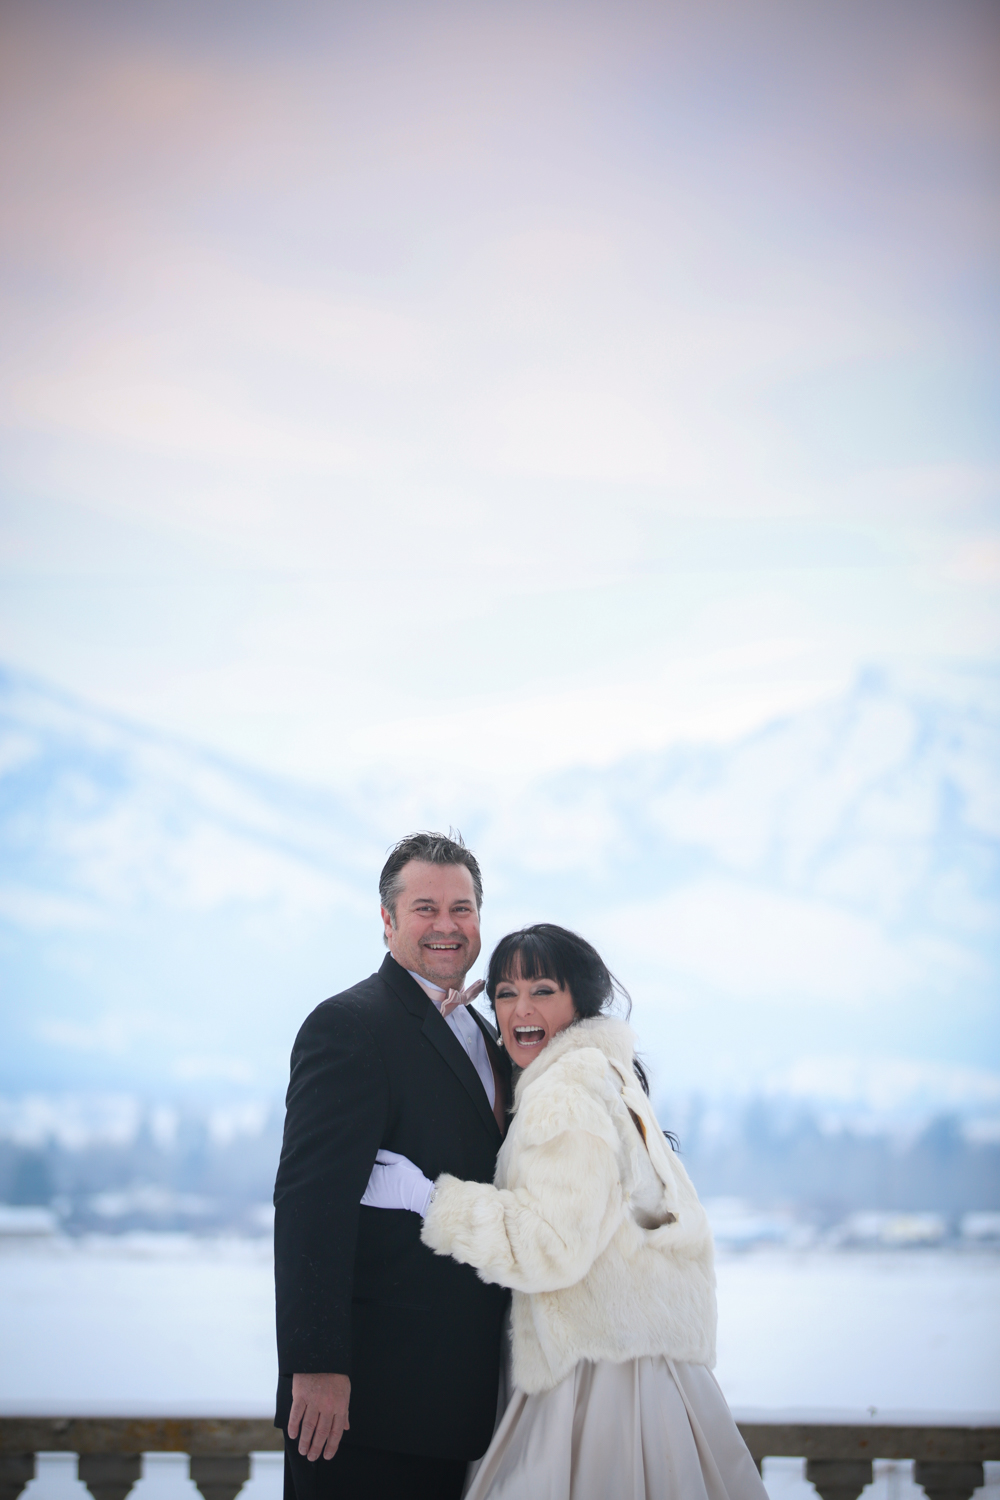 Winter wedding at the Daly Mansion-4709.jpg